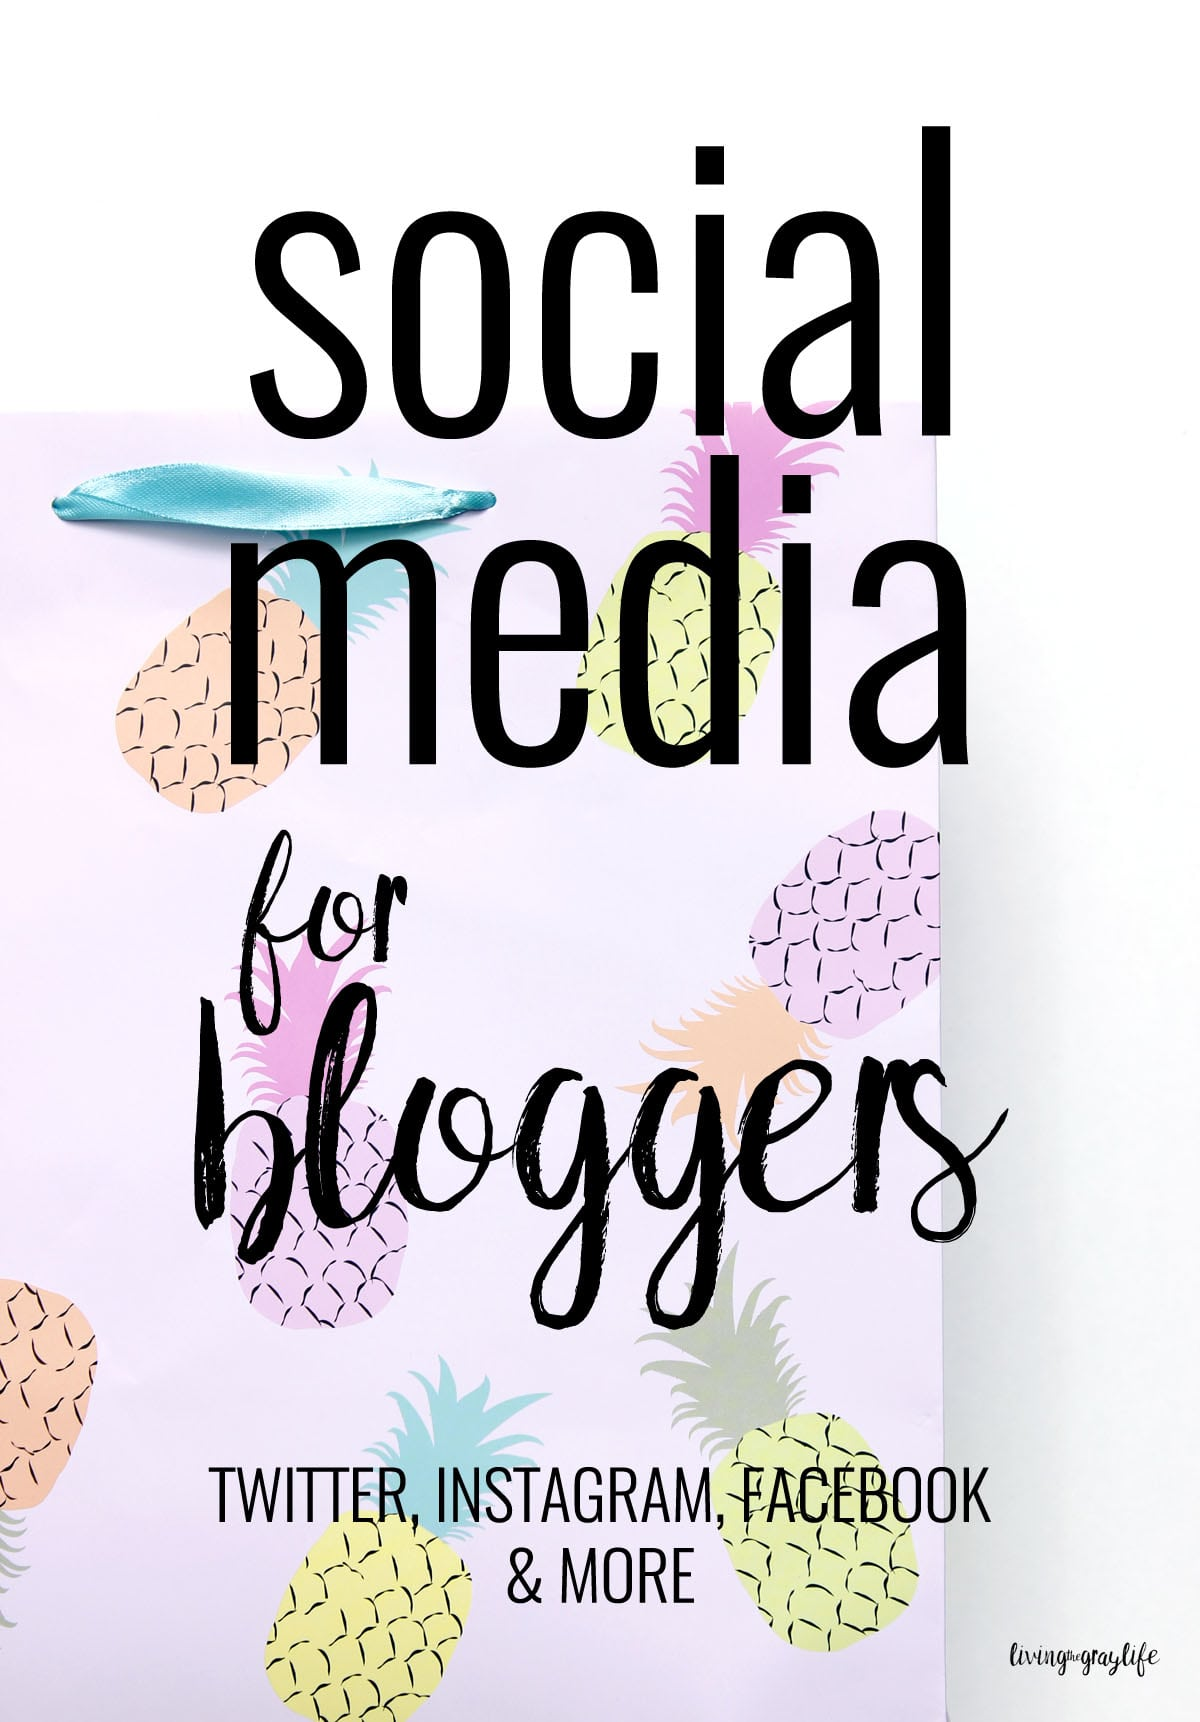 Social media for bloggers: Struggling to grasp social media as a blogger? Follow these simple tips to help grow your social platforms!